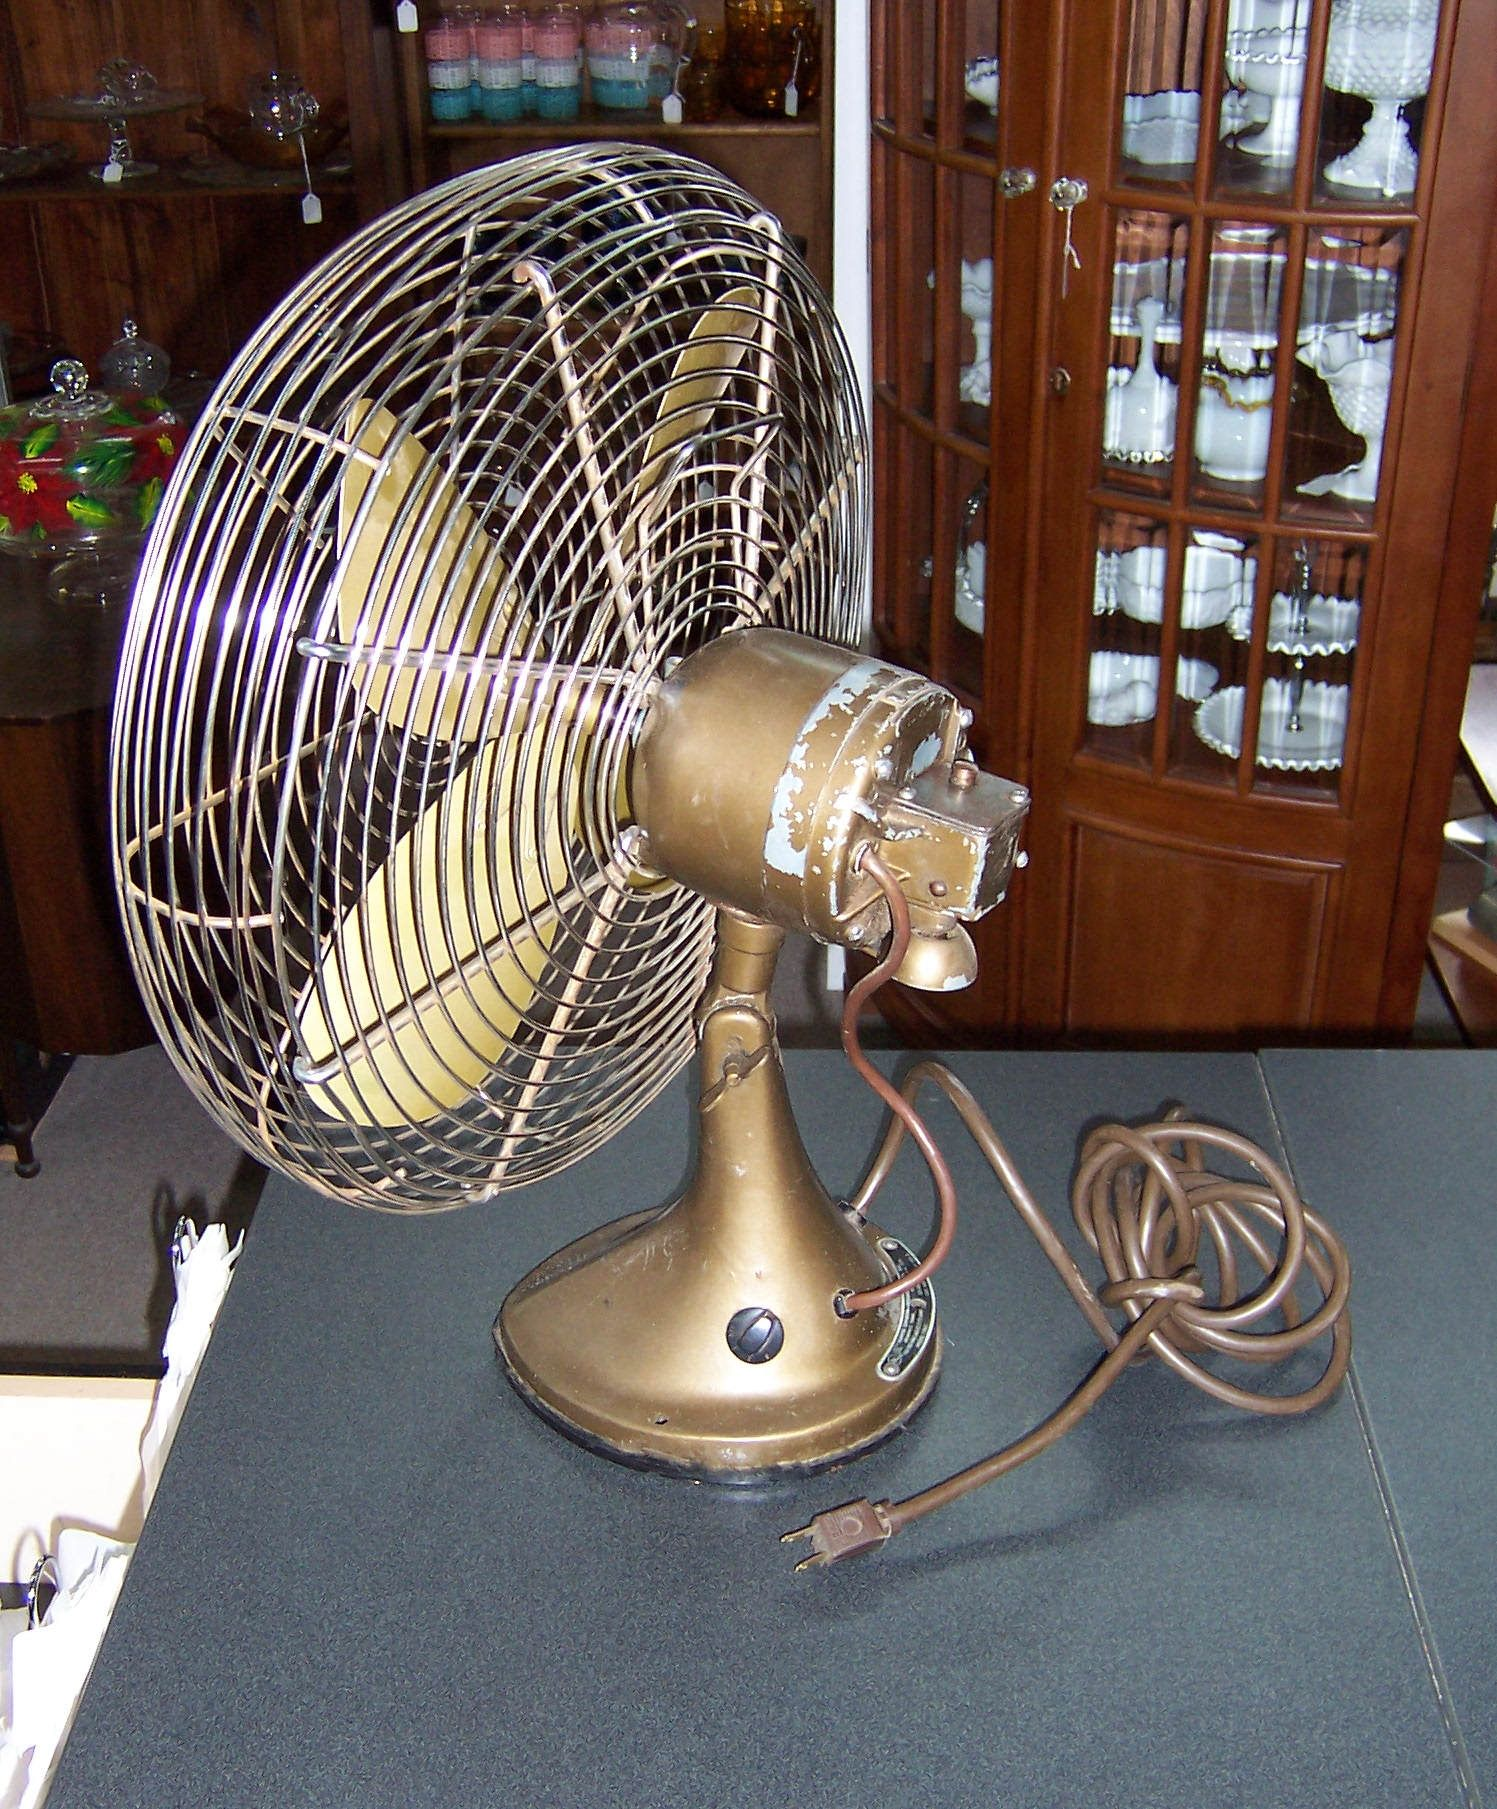 Vintage hunter electric fans httponlinecompliancefo vintage hunter electric fans hunter fan has been in the industry of making quality made ceiling fan since the primary hunter fan units are powered aloadofball Images